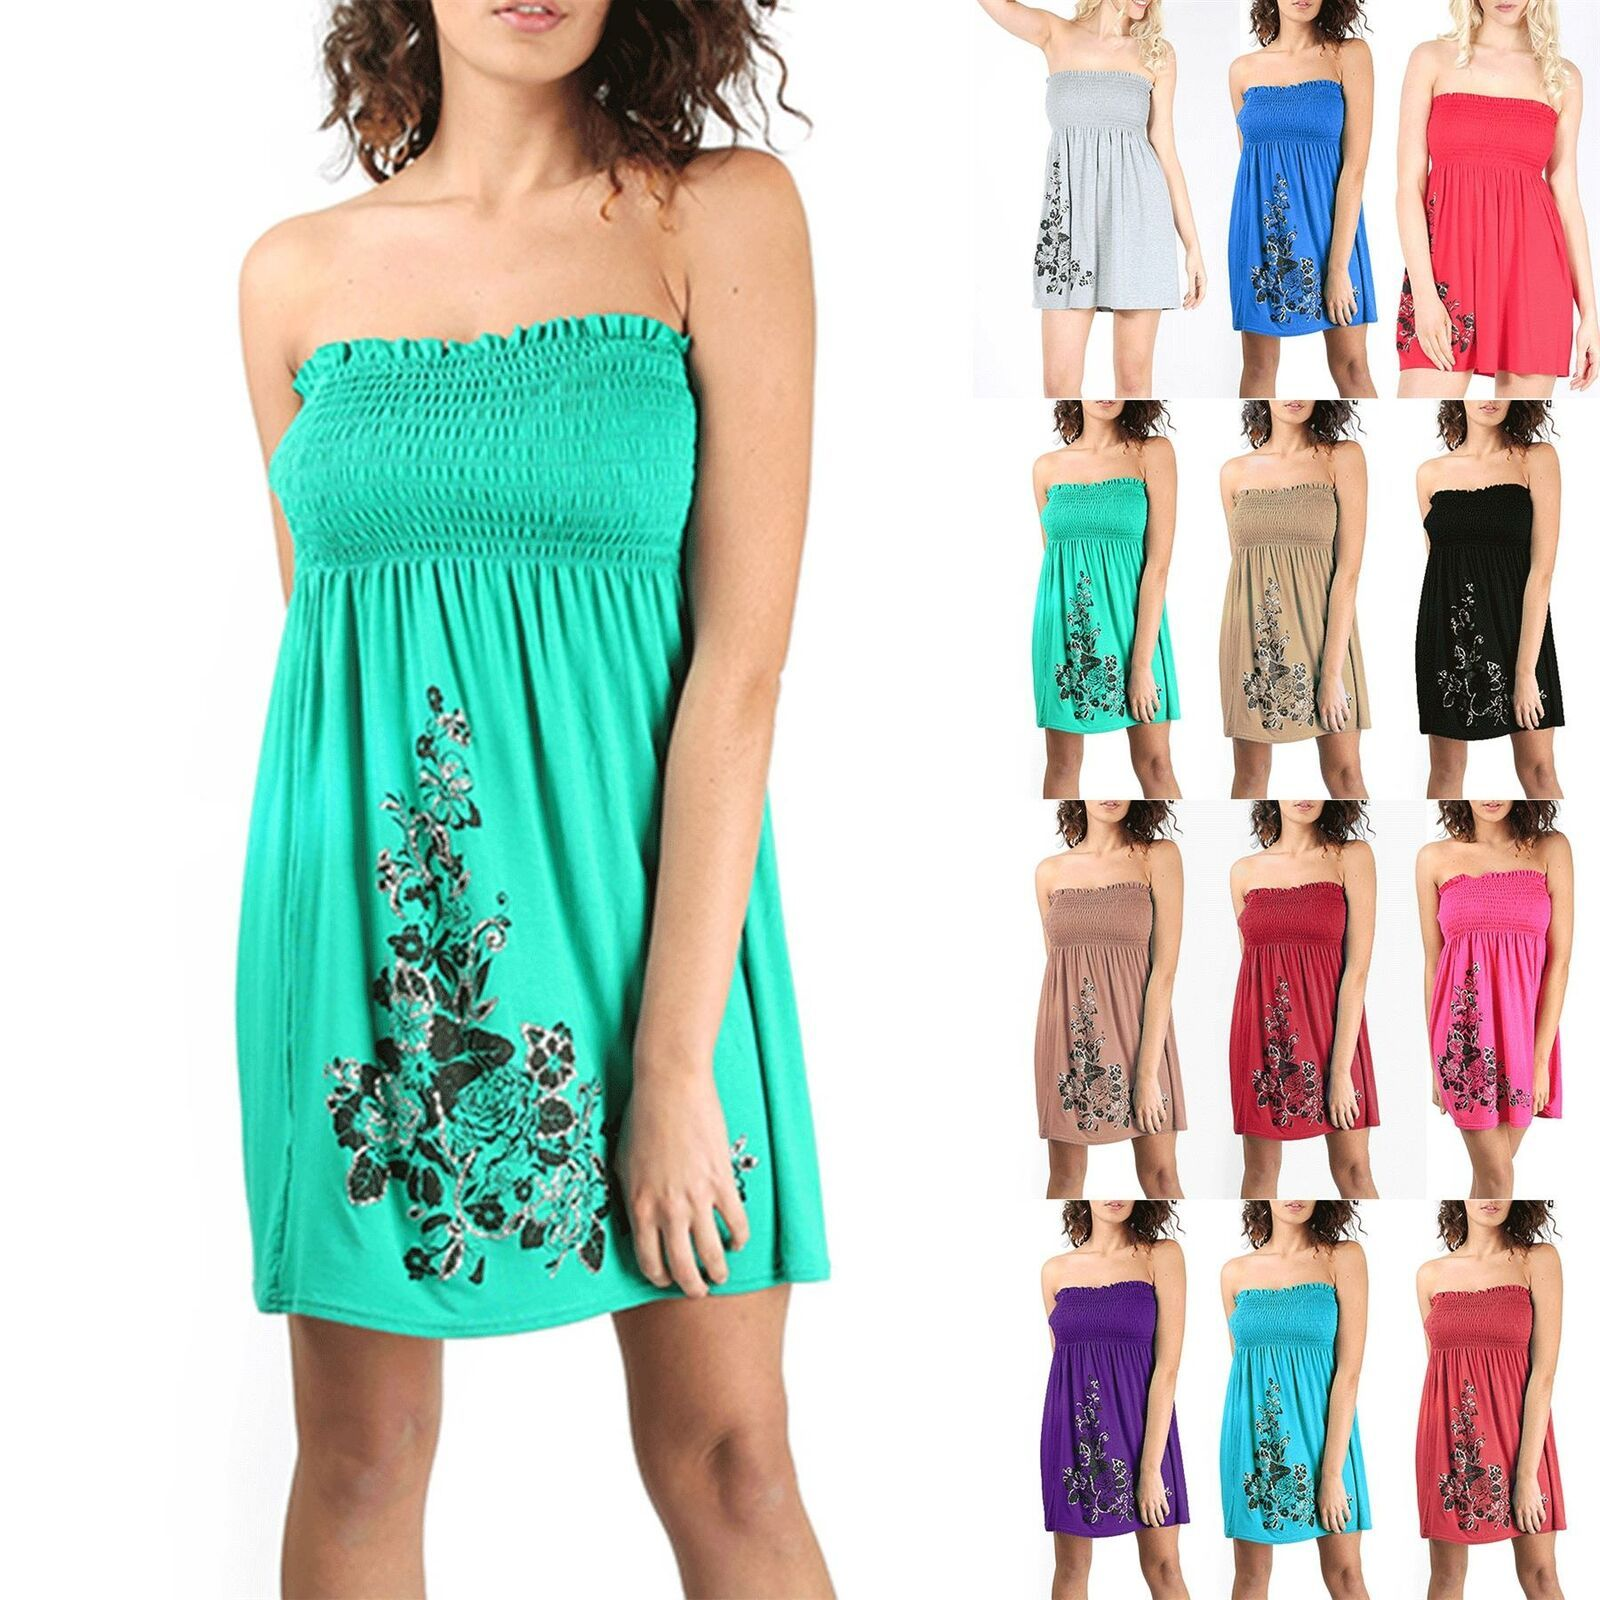 LADIES WOMEN/'S NEW SHEERING BANDEAU BOOB TUBE STRAPLESS MAXI PARTY DRESS  8-26